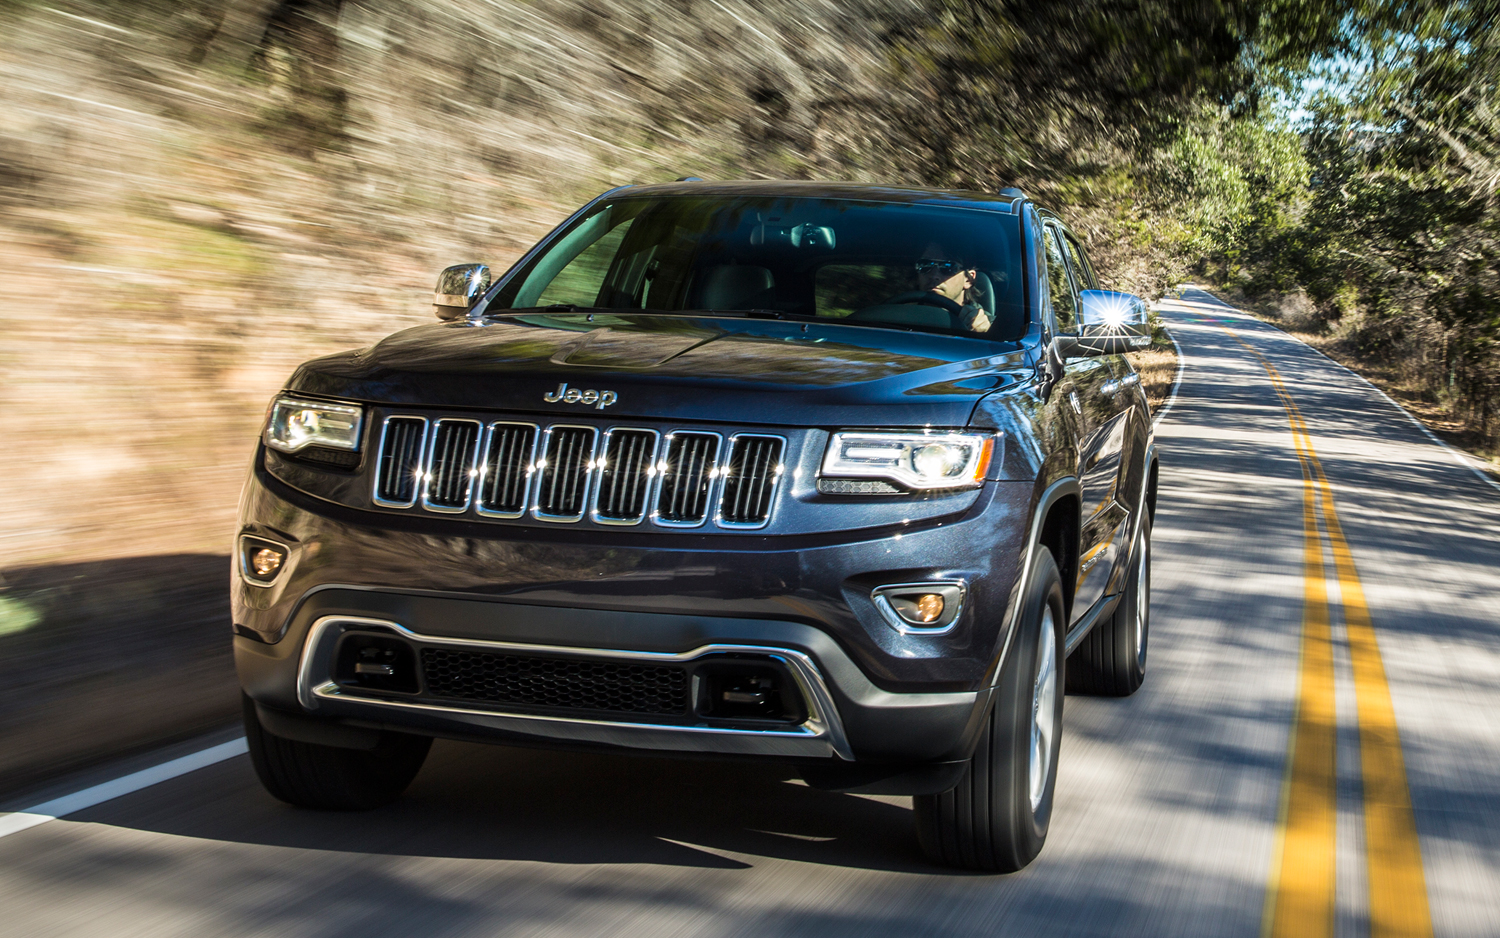 Jeep Grand Cherokee Diesel Front View In Motion on Zf Transmission And Chrysler